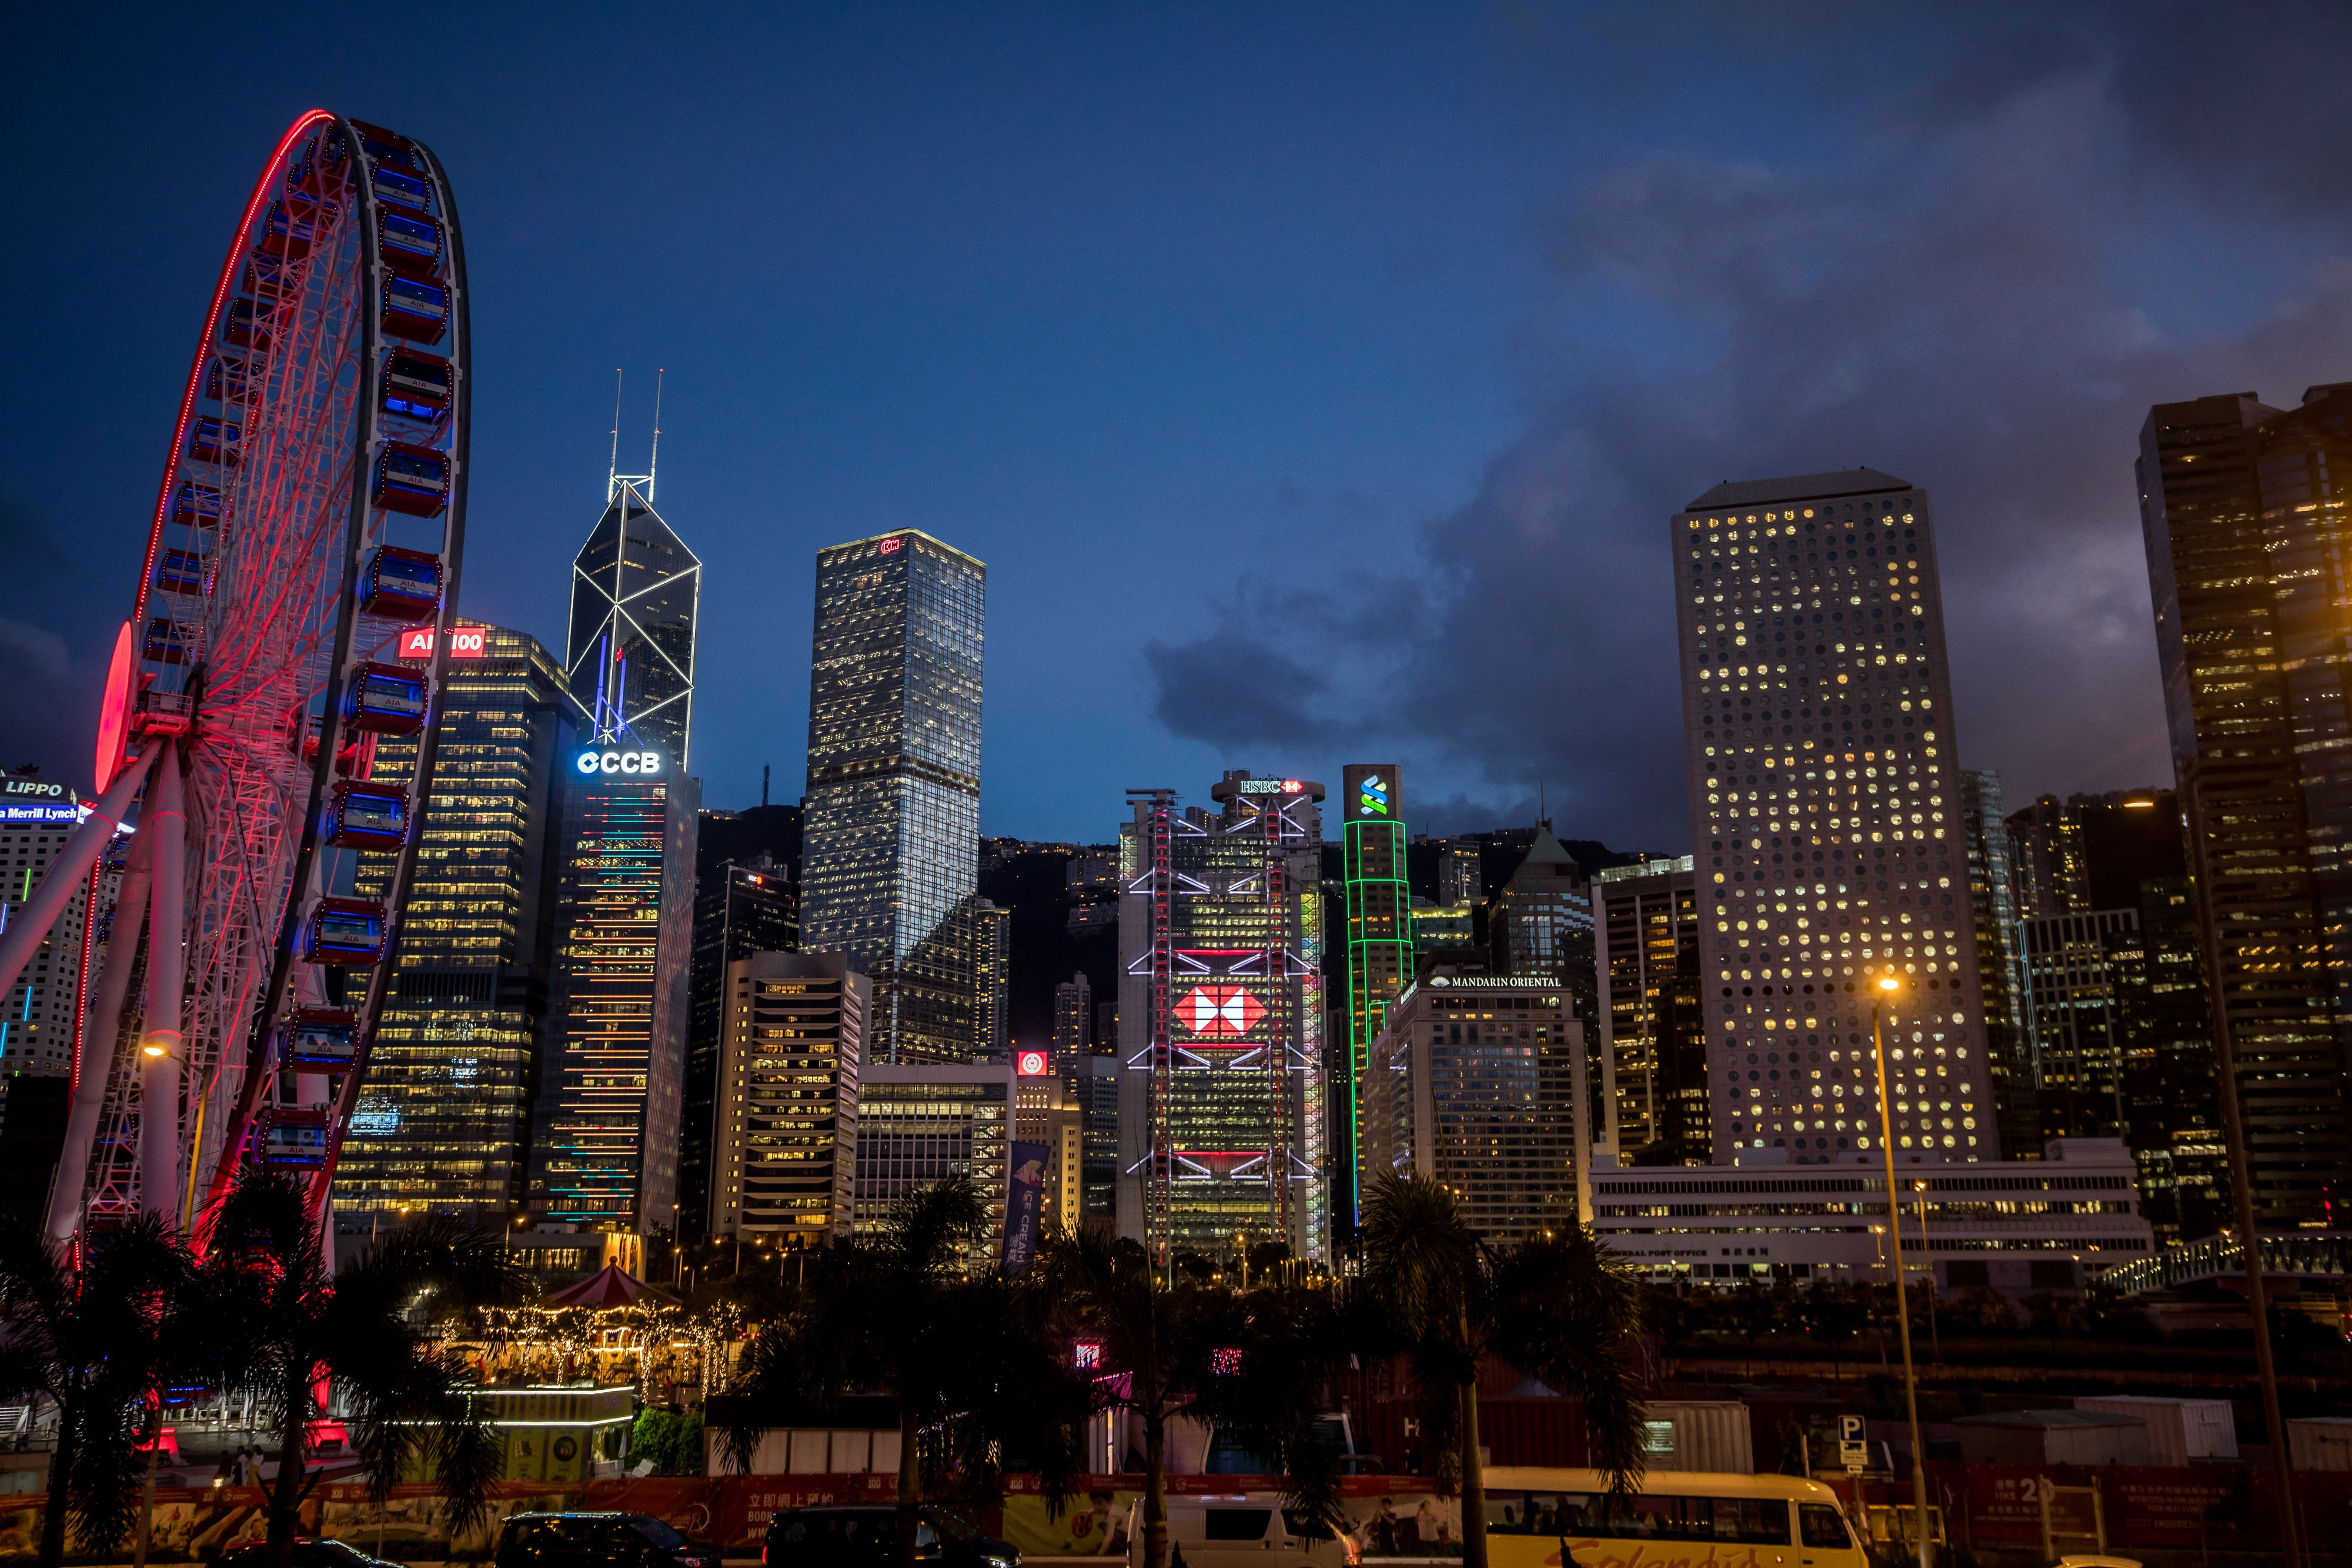 Amid protest violence and dire warnings for Hong Kong's